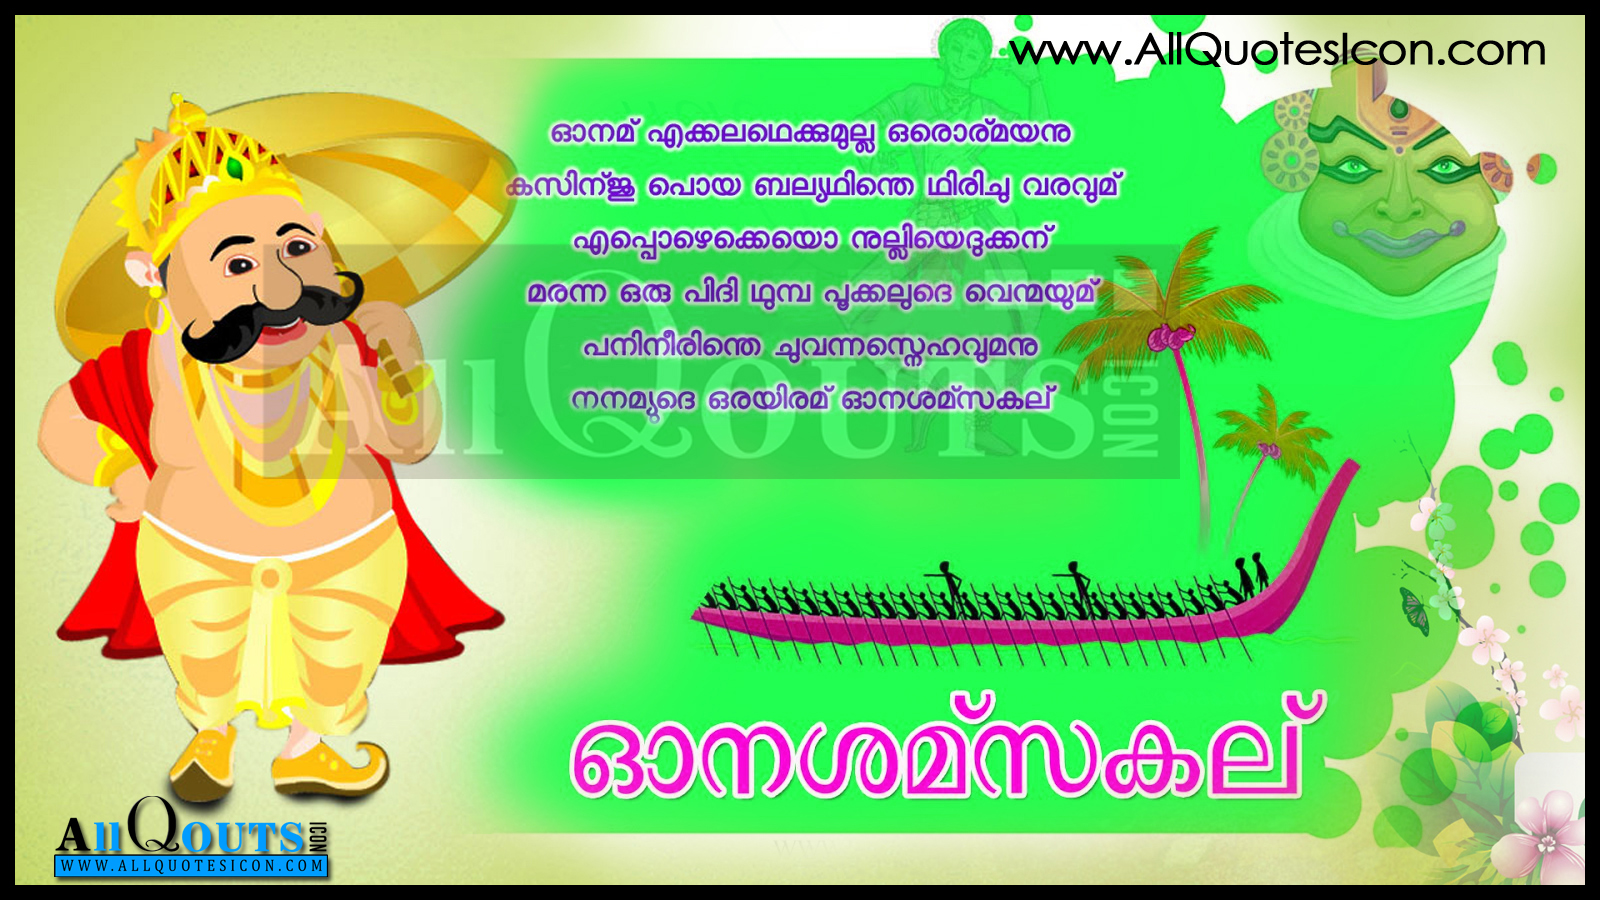 Onam wishes in malayalam hd pictures best onam ashamshagal onam hd onam wishes in malayalam best onam wishes nice onam wishes onam hd wallpapers kristyandbryce Image collections